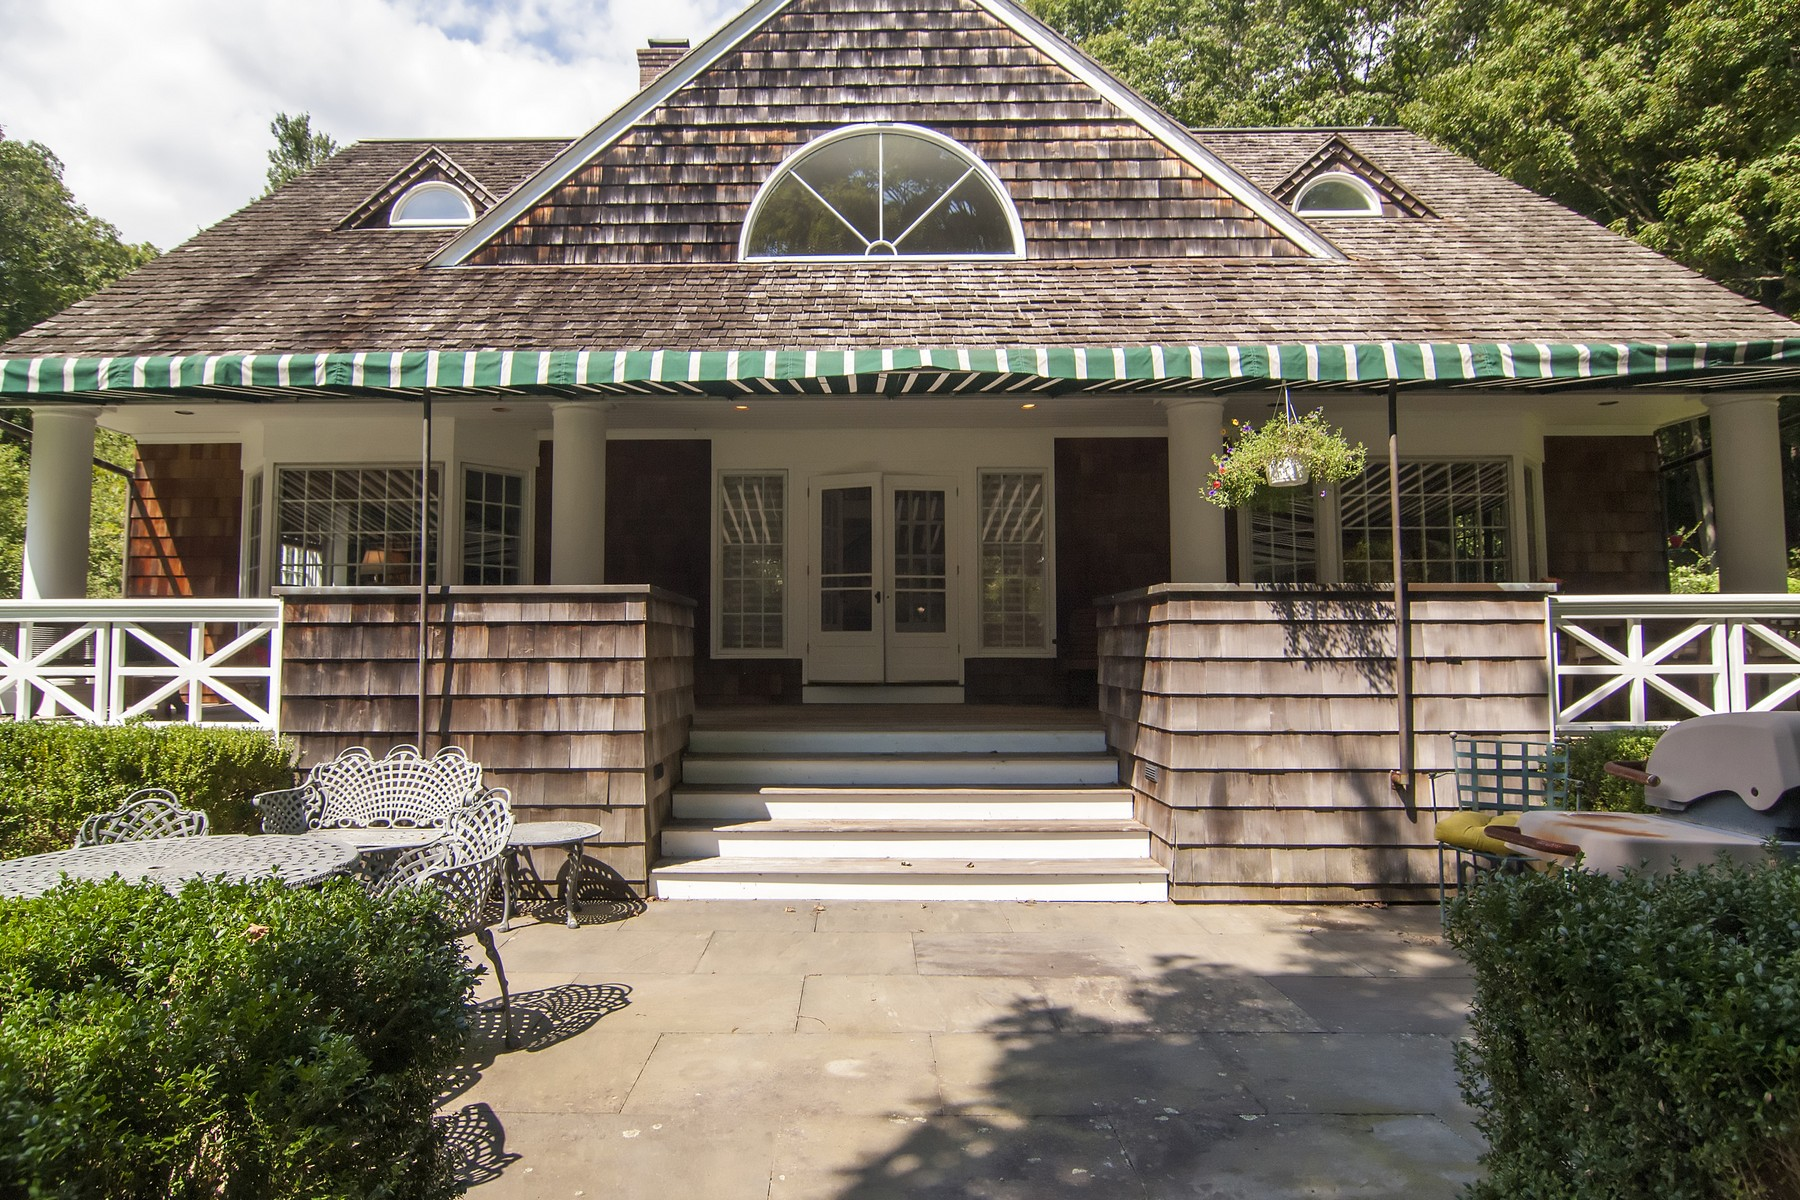 Single Family Home for Sale at Enchanting Home 124 Meadow Woods Road Deep River, Connecticut 06417 United States